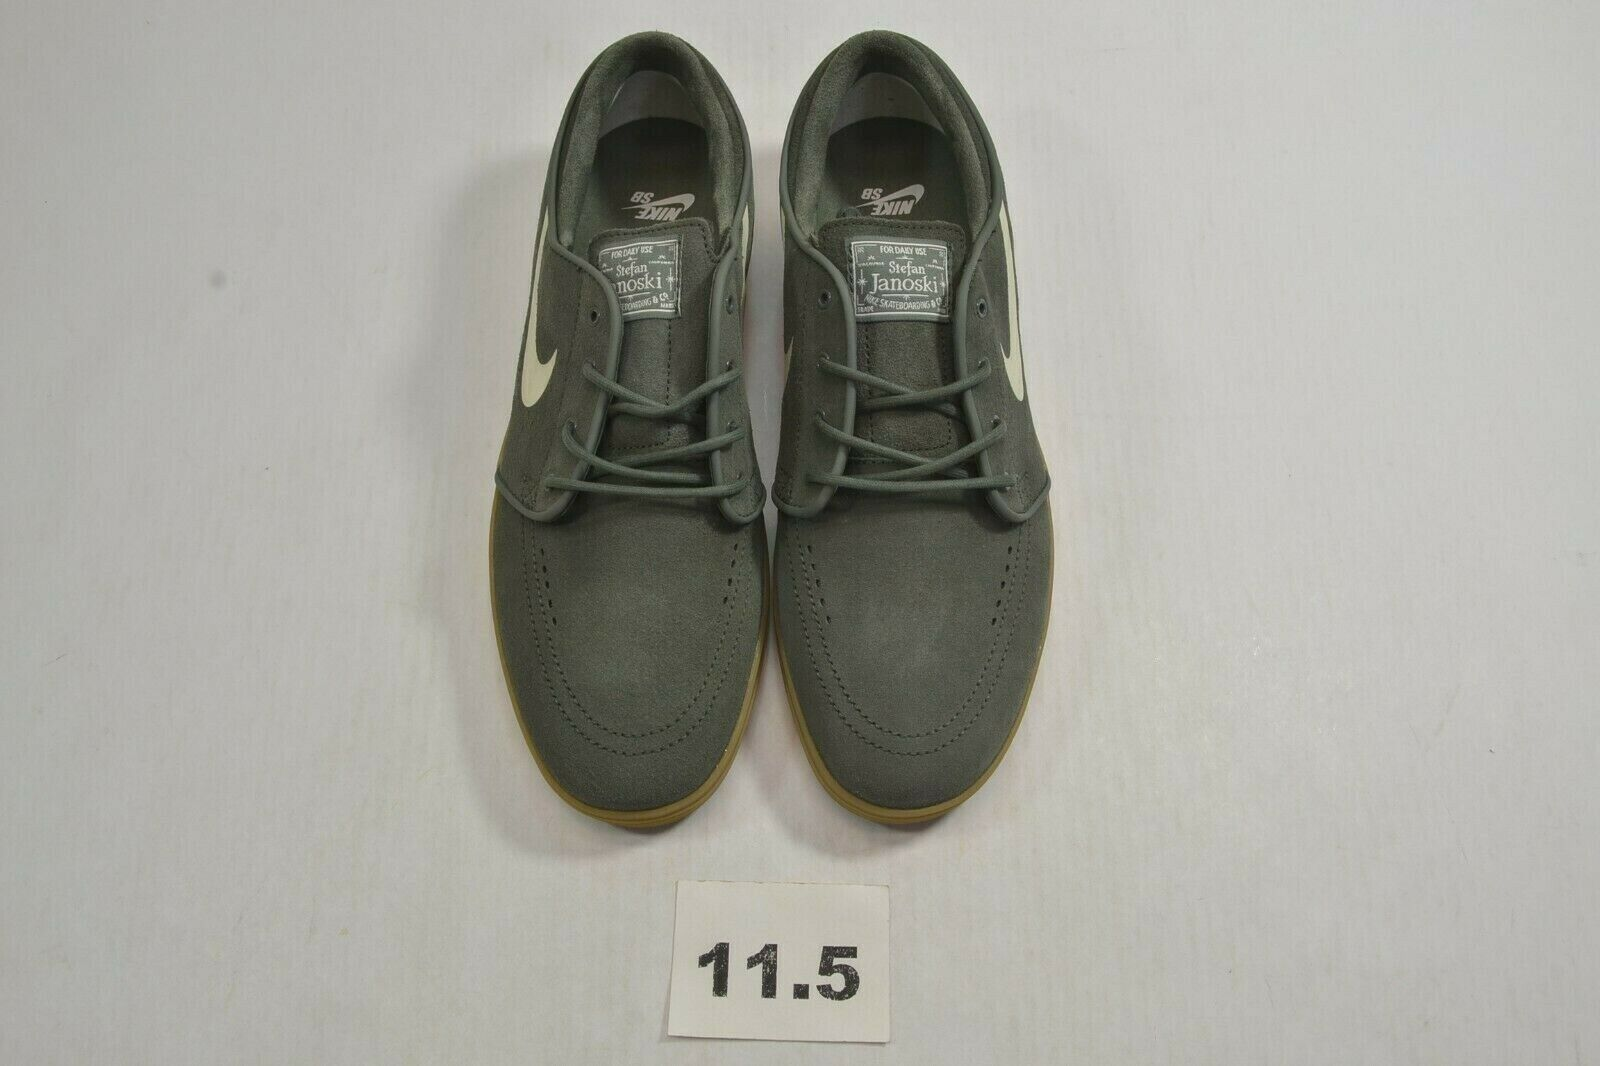 Nike LUNAR STEFAN JANOSKI River River River Rock Sail Gum Light Brown (D) (503) Men's shoes 5ddcfe